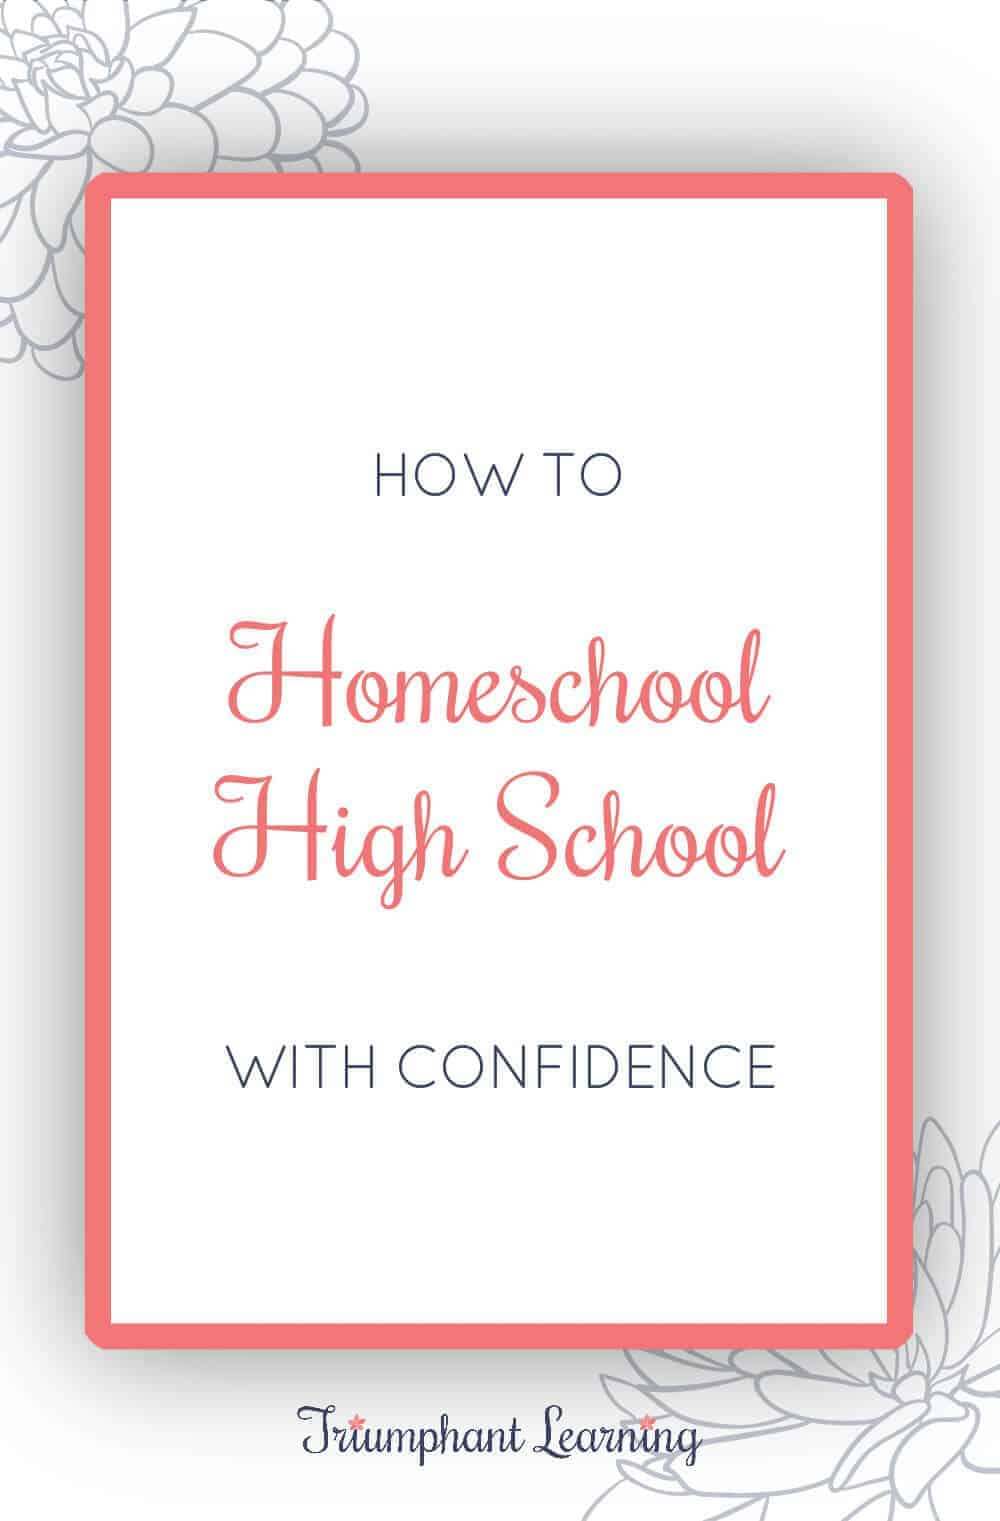 Nervous about homeschooling high school? These two principles will help you relax, enjoy this new stage, and homeschool high school with confidence. via @TriLearning